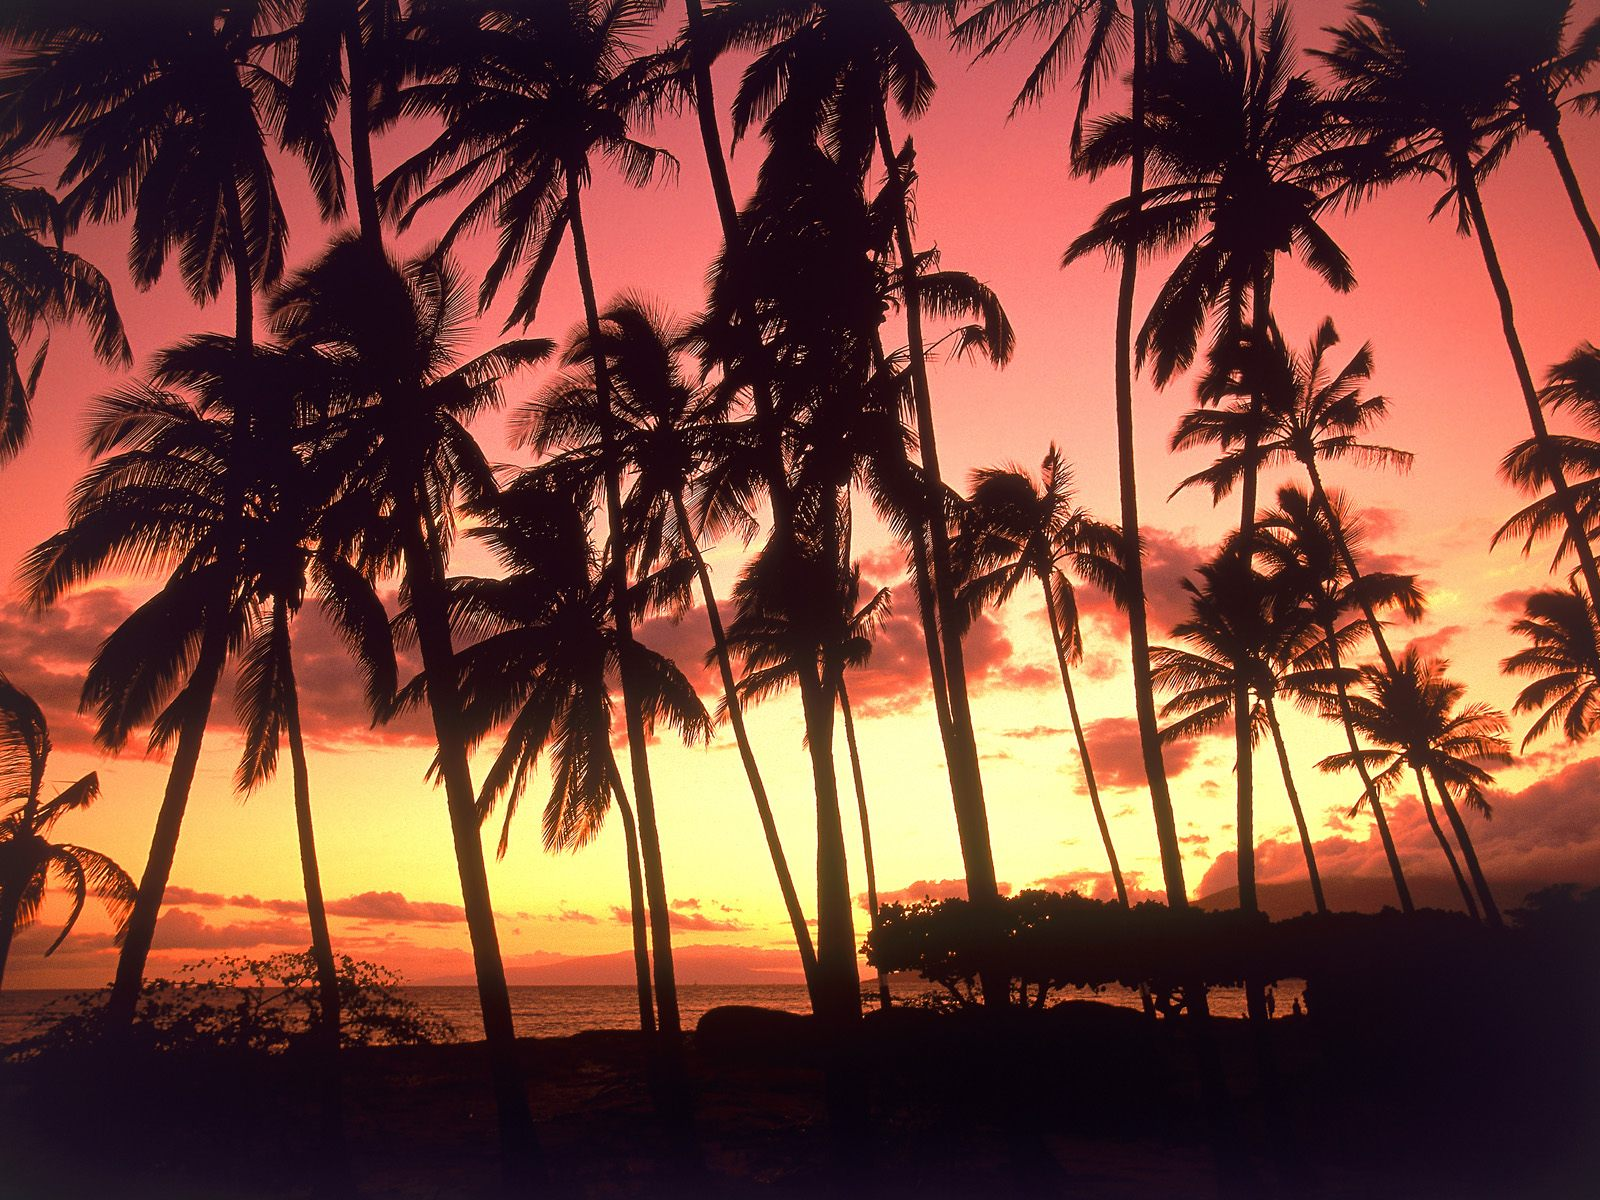 Discount+Hawaiian+Travel+Packages+7.jpg